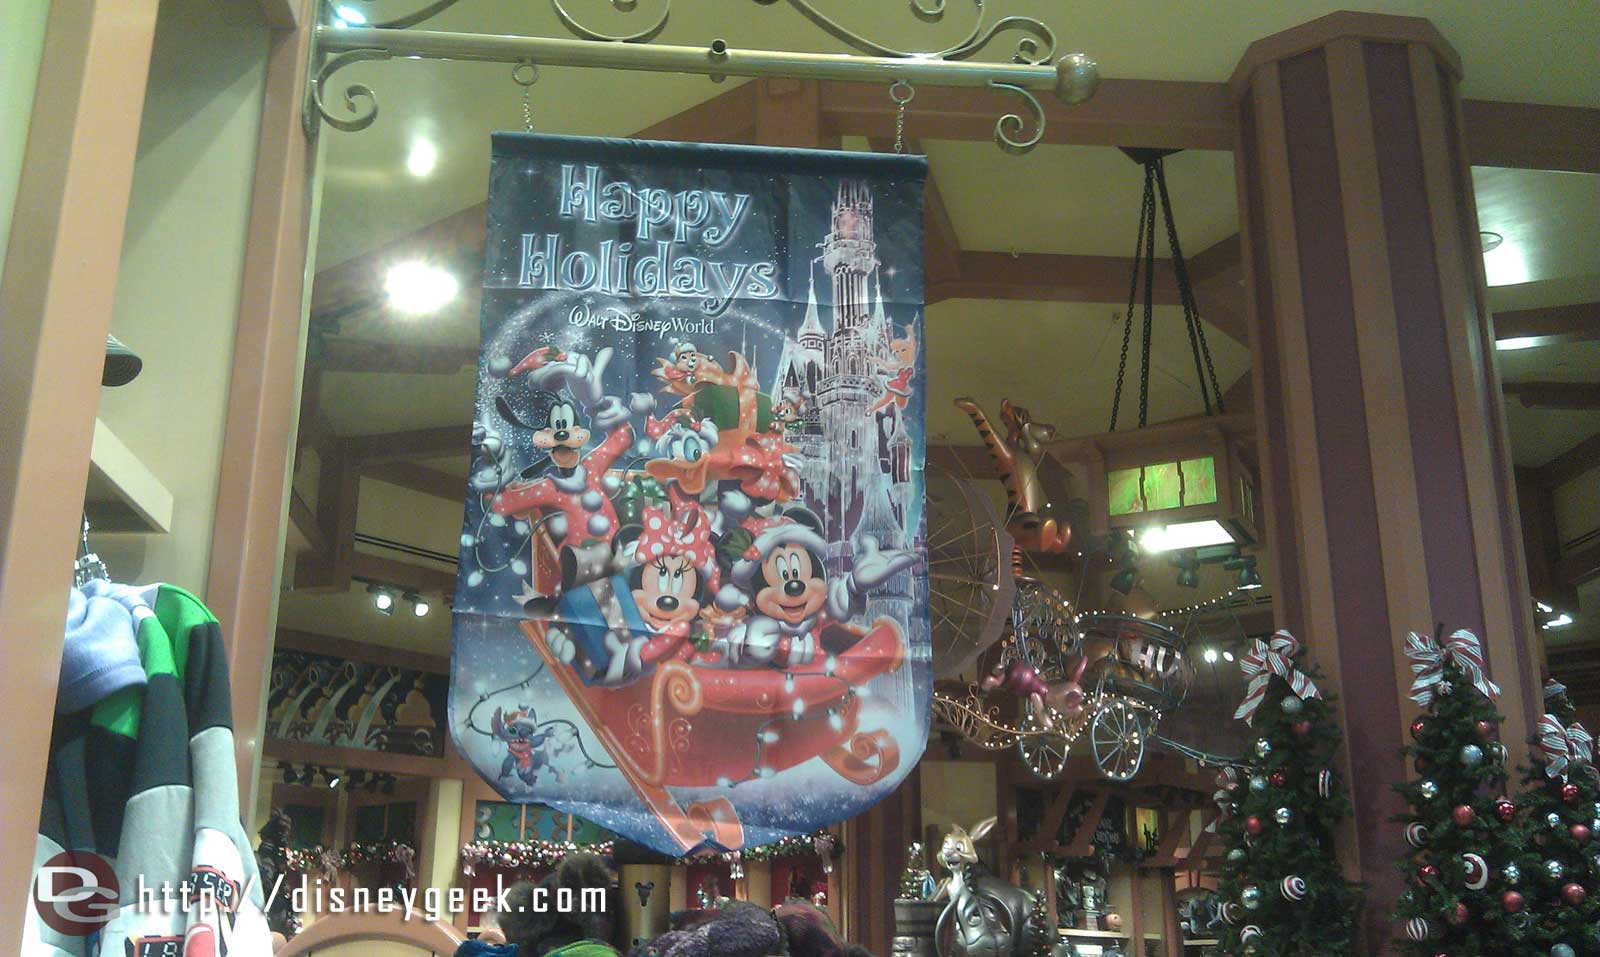 Inside the World of Disney…. at the Disneyland Resort… why?